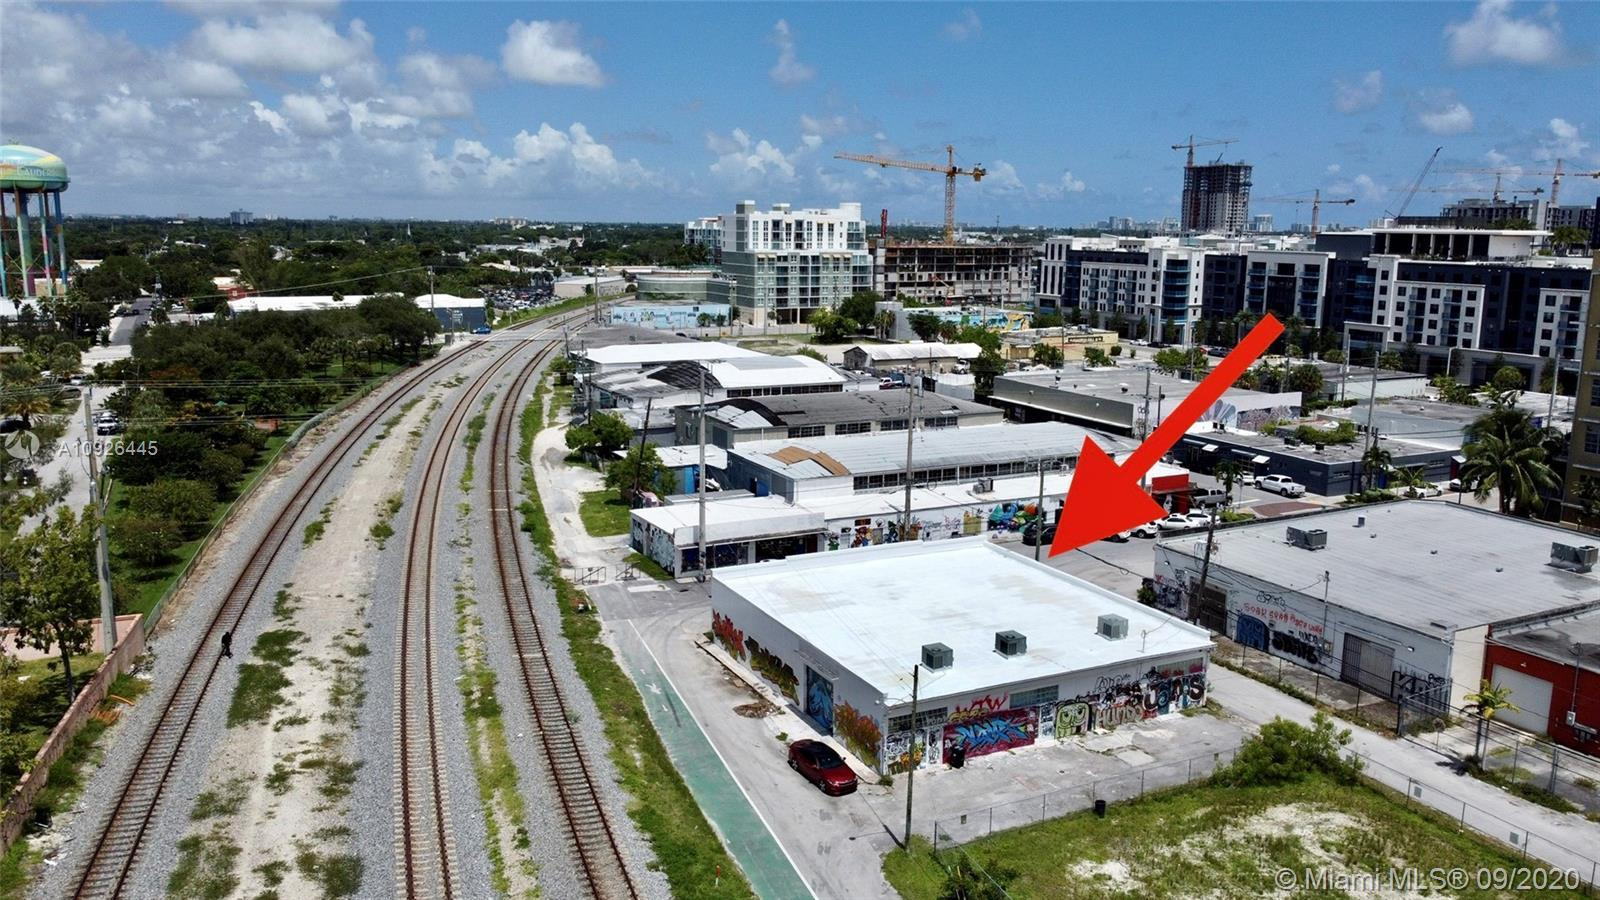 Amazing opportunity! Freestanding building situated in downtown Fort Lauderdale in the heart of Fat Village. This building is situated in close proximity to all the lofts new construction as well as art studios, Galleries and restaurants. The property can be subdivided into three separate units that are self-sufficient with air-conditioning and bathrooms. Zoned commercial industrial as well as retail. This property will not last!